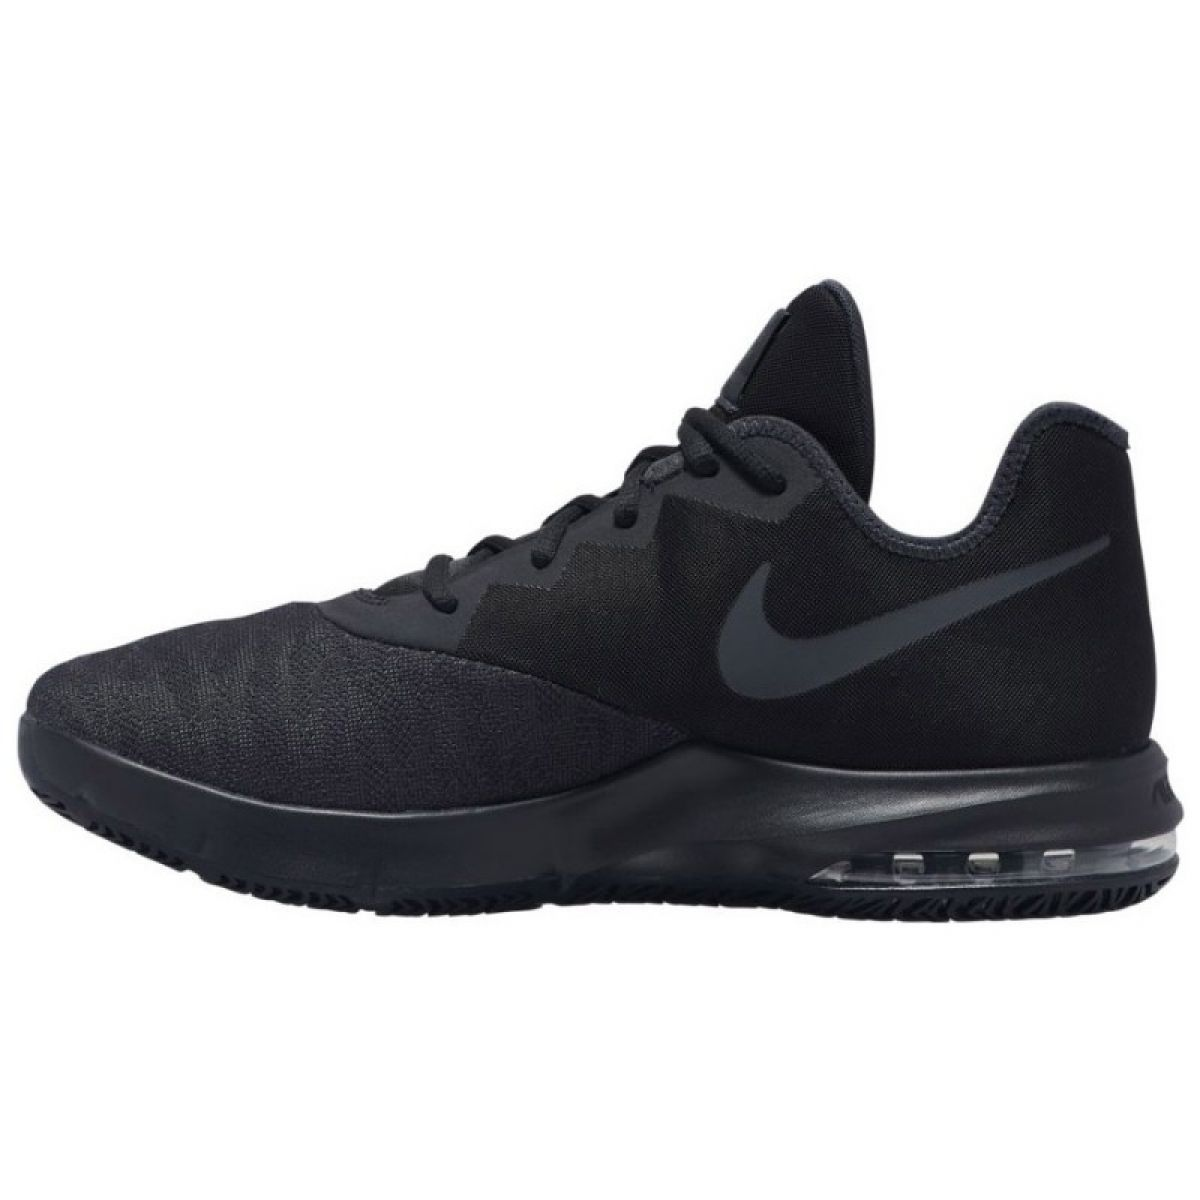 top brands hot product new concept Nike Air Max Infuriate Iii Low WM AJ5898 007 Chaussures Noir